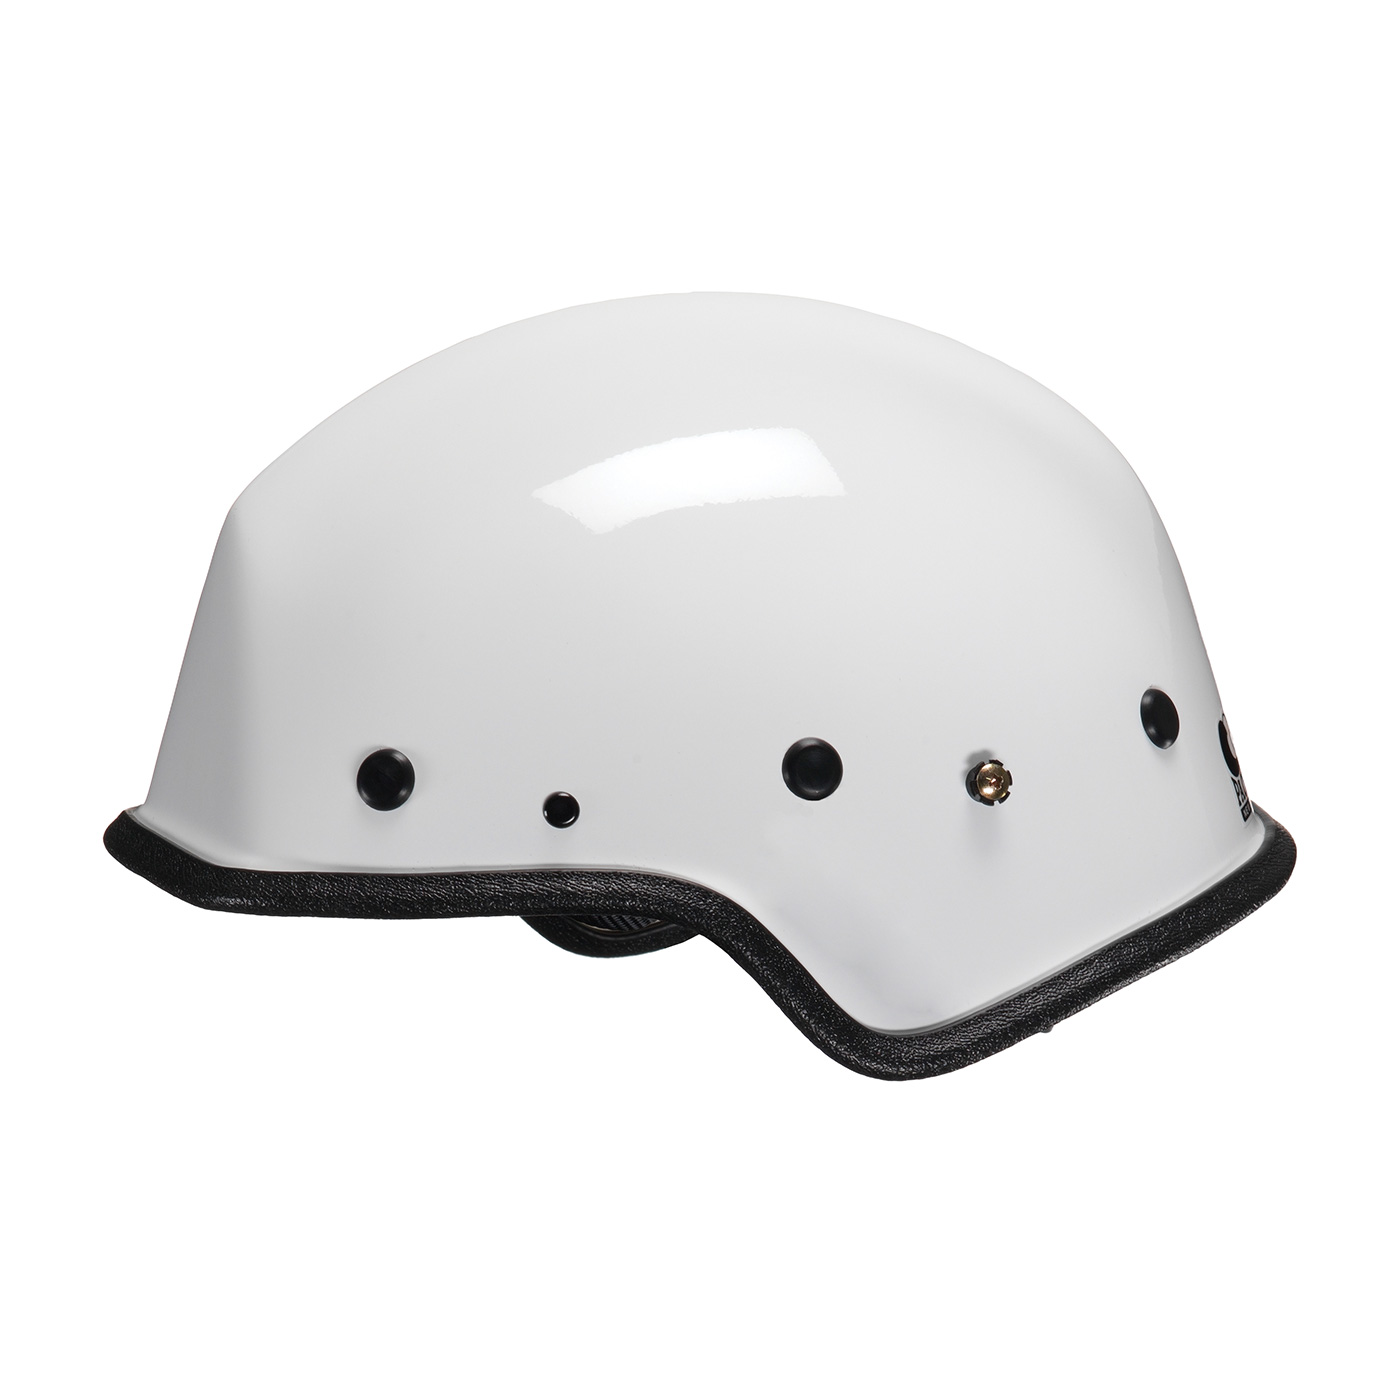 815-32XX PIP® Pacific R7H™ Rescue Helmet with ESS Goggle Mounts - White